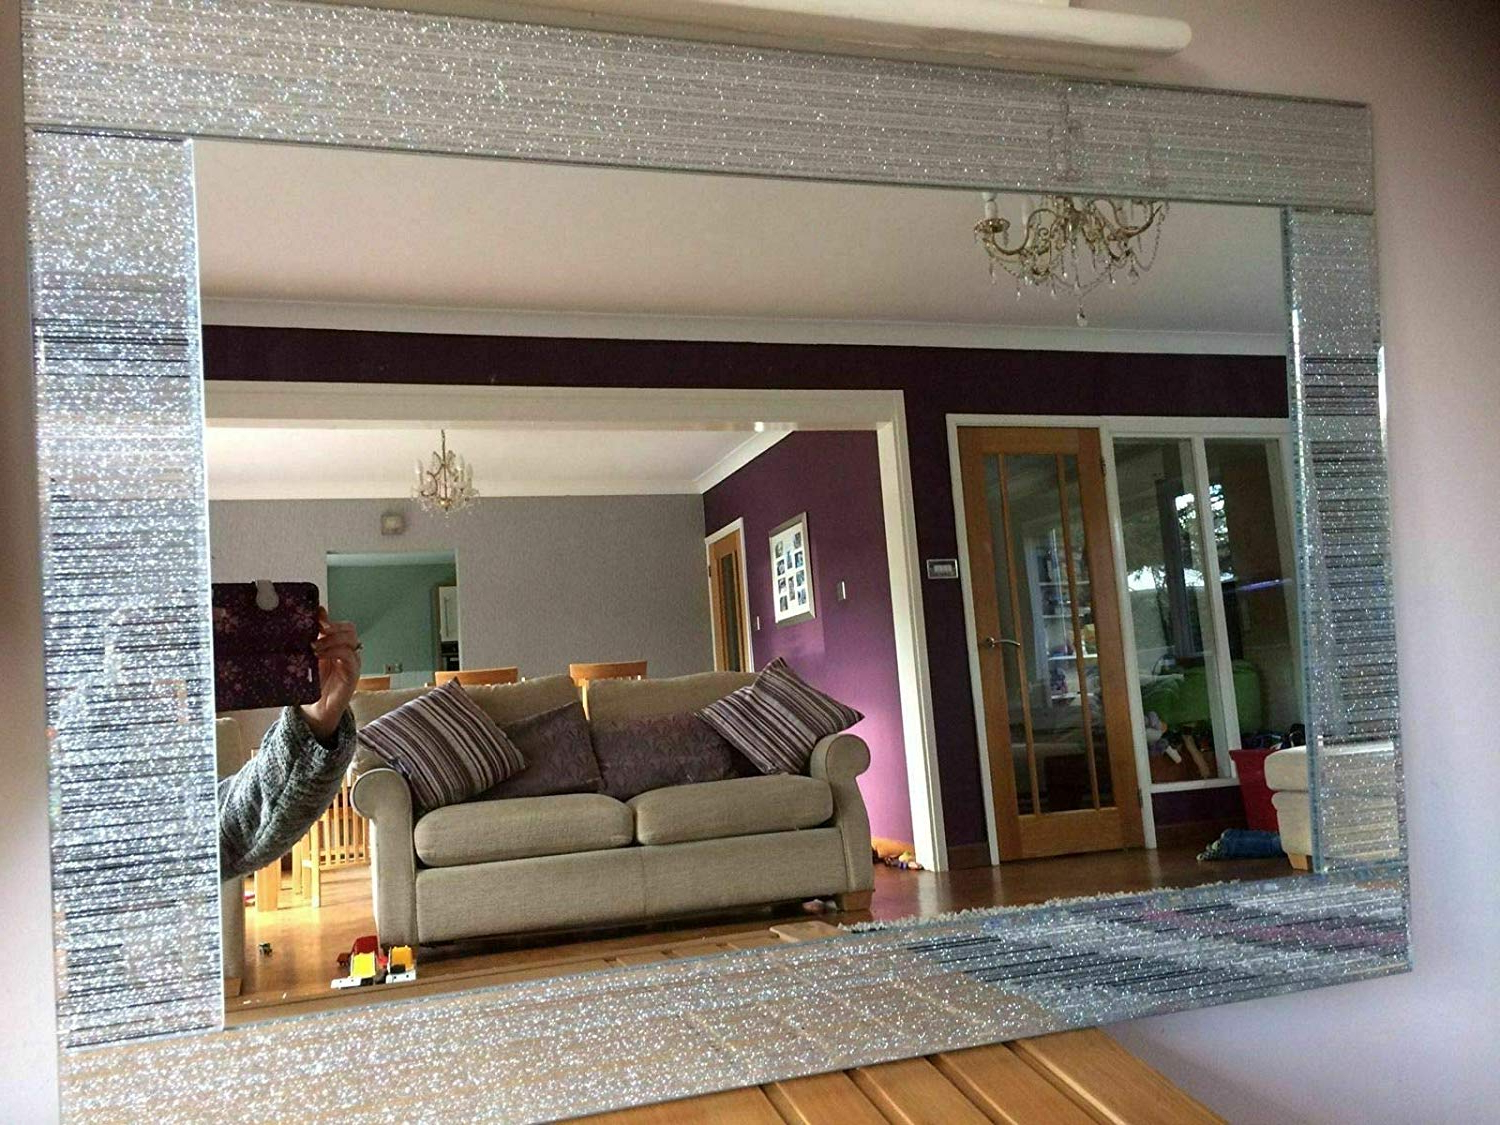 Glitter Wall Mirrors Pertaining To Well Liked Homely Rectangle Shape Designer Silver Glitter Wall Mirror Frame Beautiful Decoration Art Piece Gift (40X60Cm) (View 7 of 20)